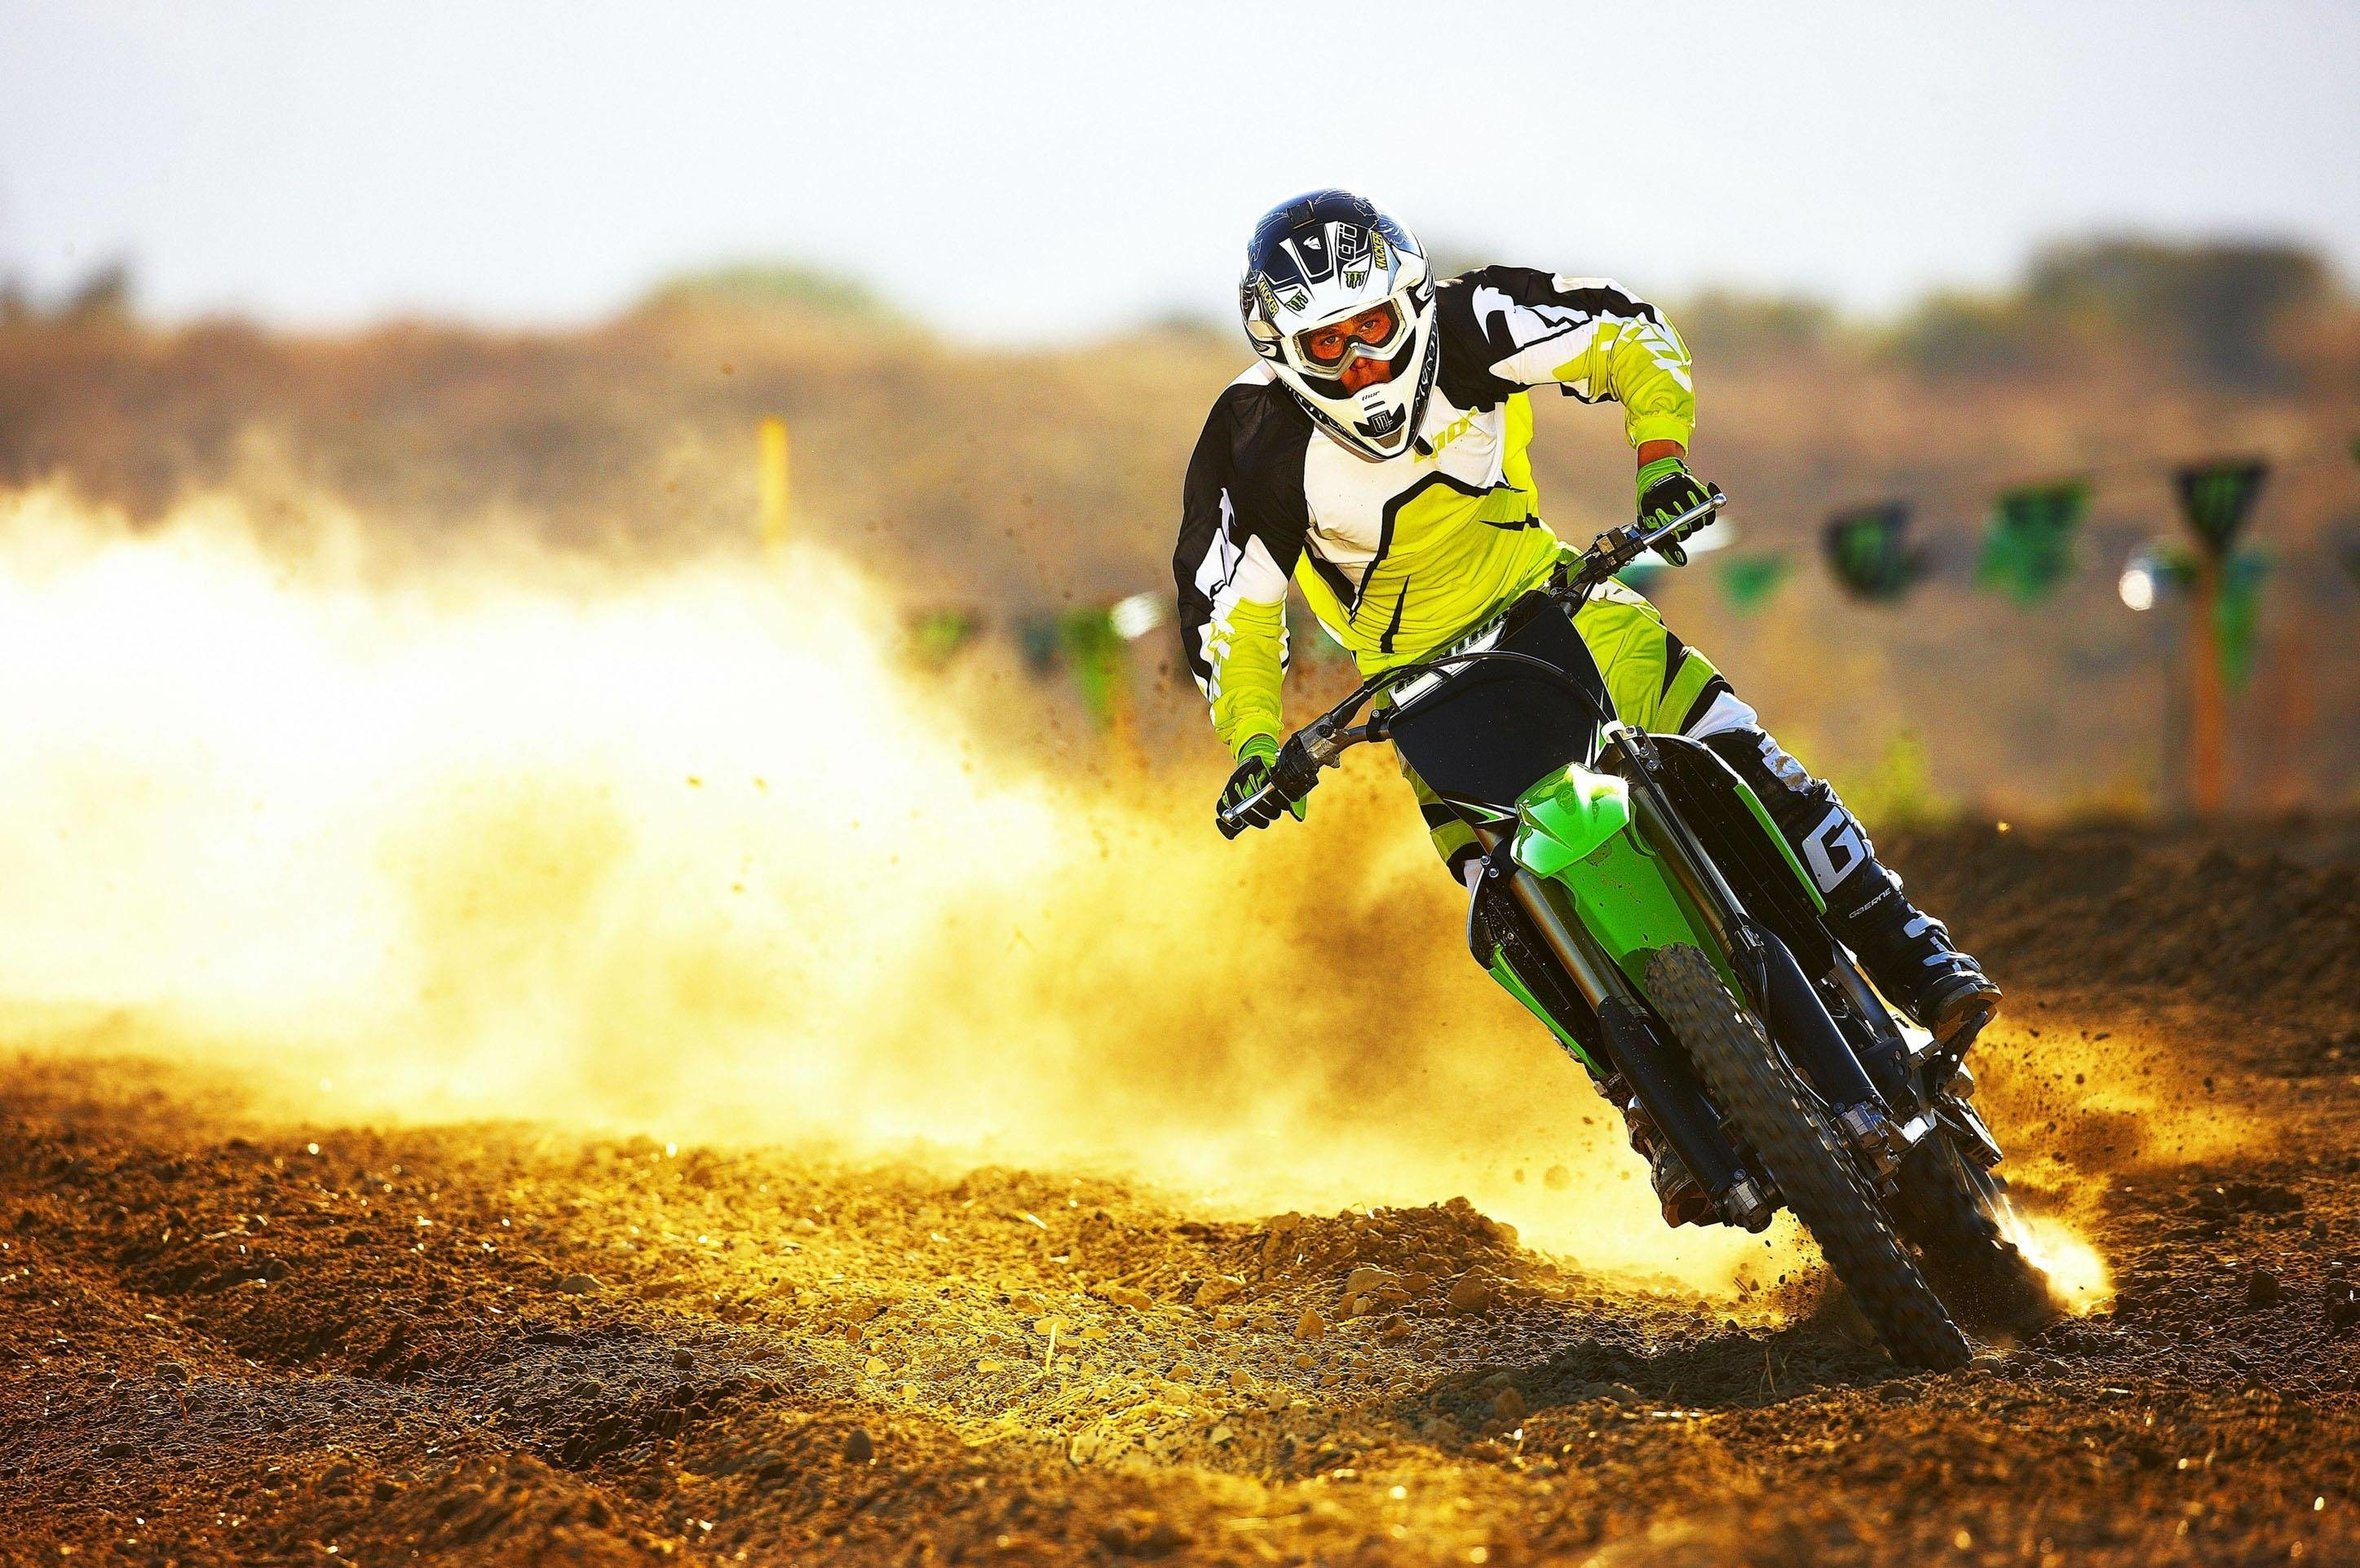 Freestyle Motocross wallpapers for iphone · Off Road MotorcyclesMotorcycle  BikeDirt …